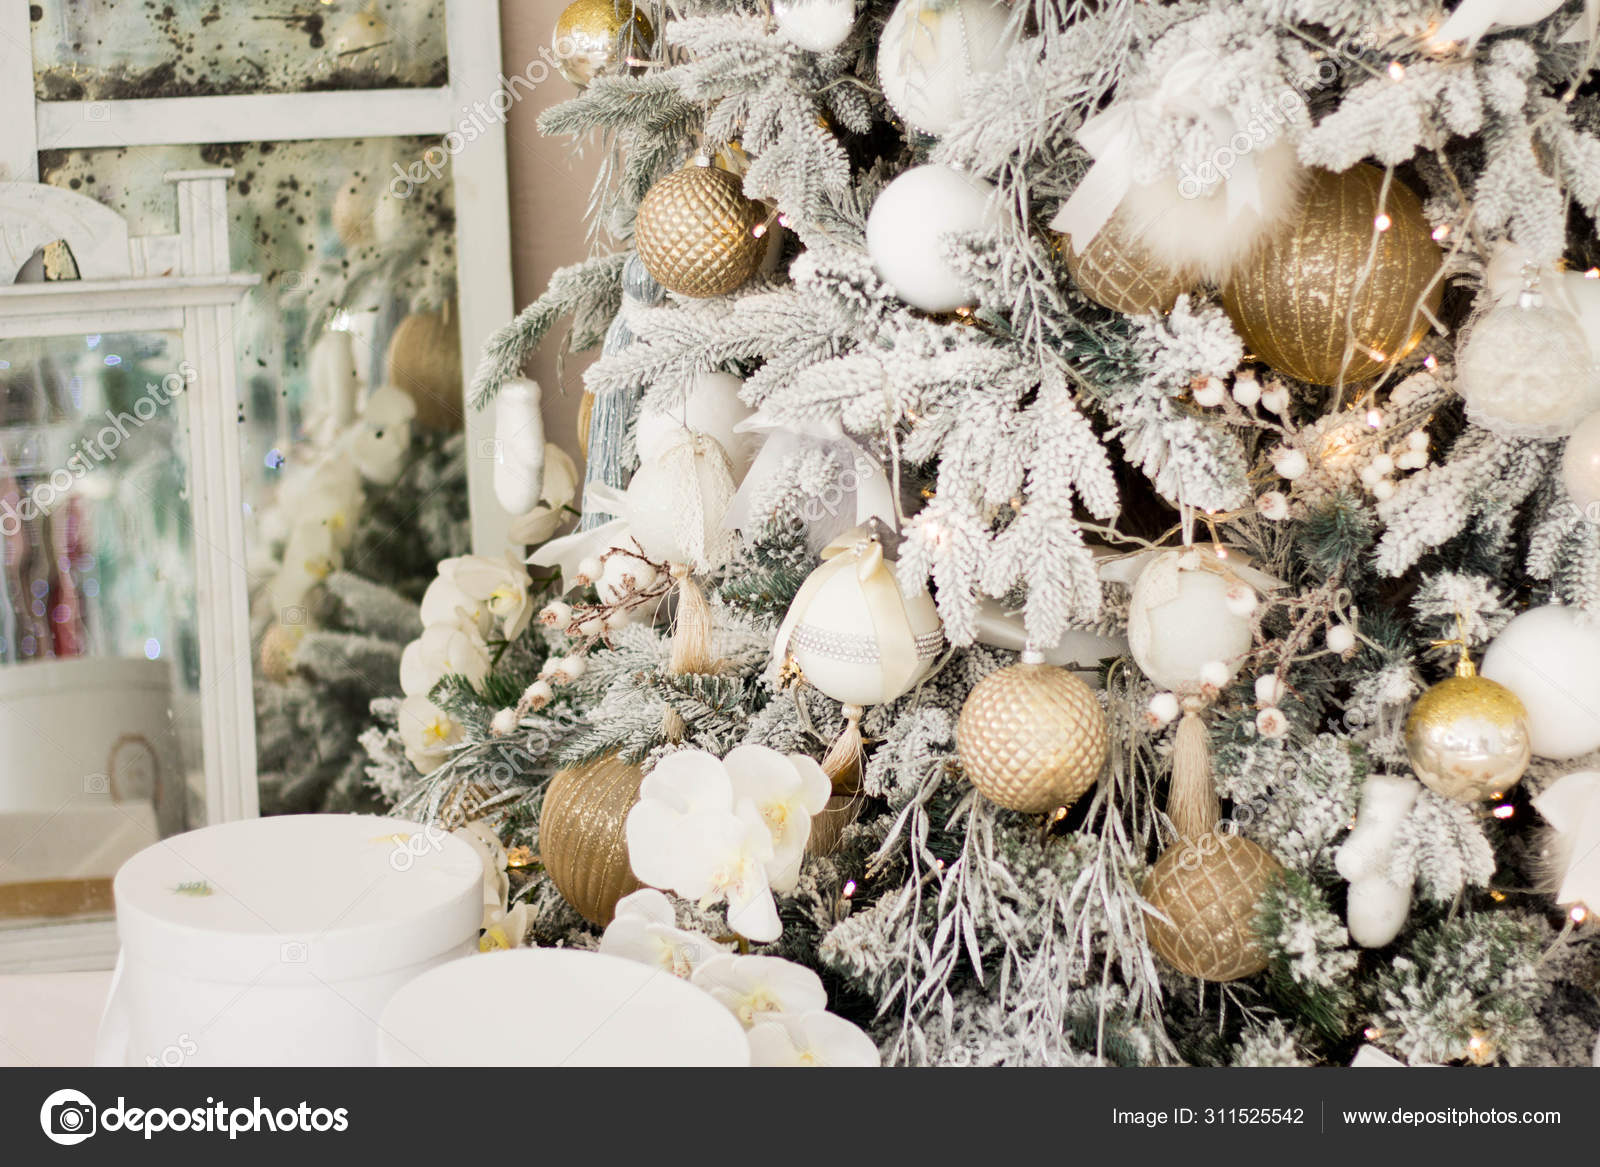 Beautiful Christmas Tree With Festive Gold White Decor Against Blurred Lights On Background Closeup Stock Photo Image By C Misschumakova 311525542